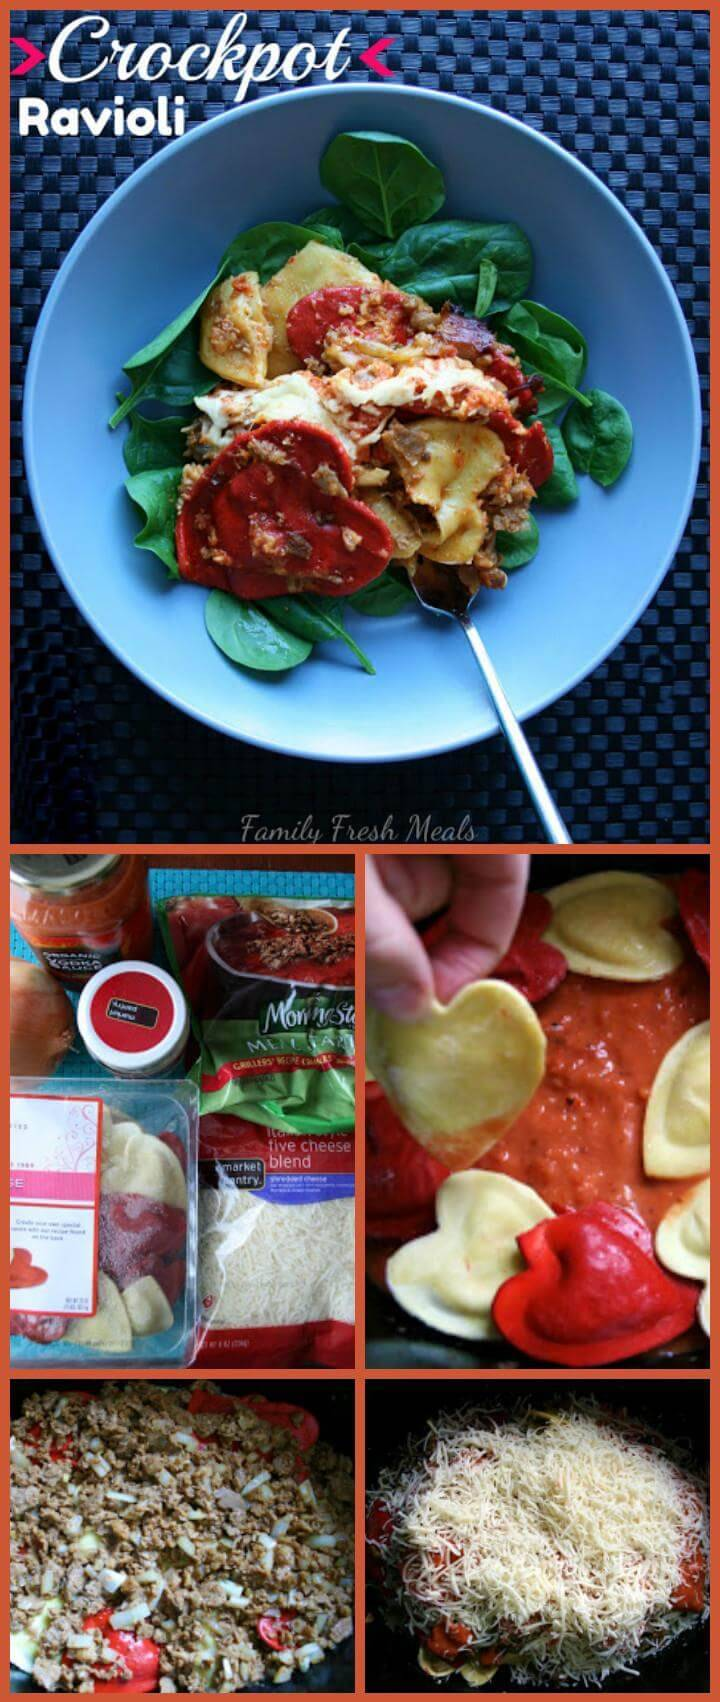 yummy crockpot ravioli recipe